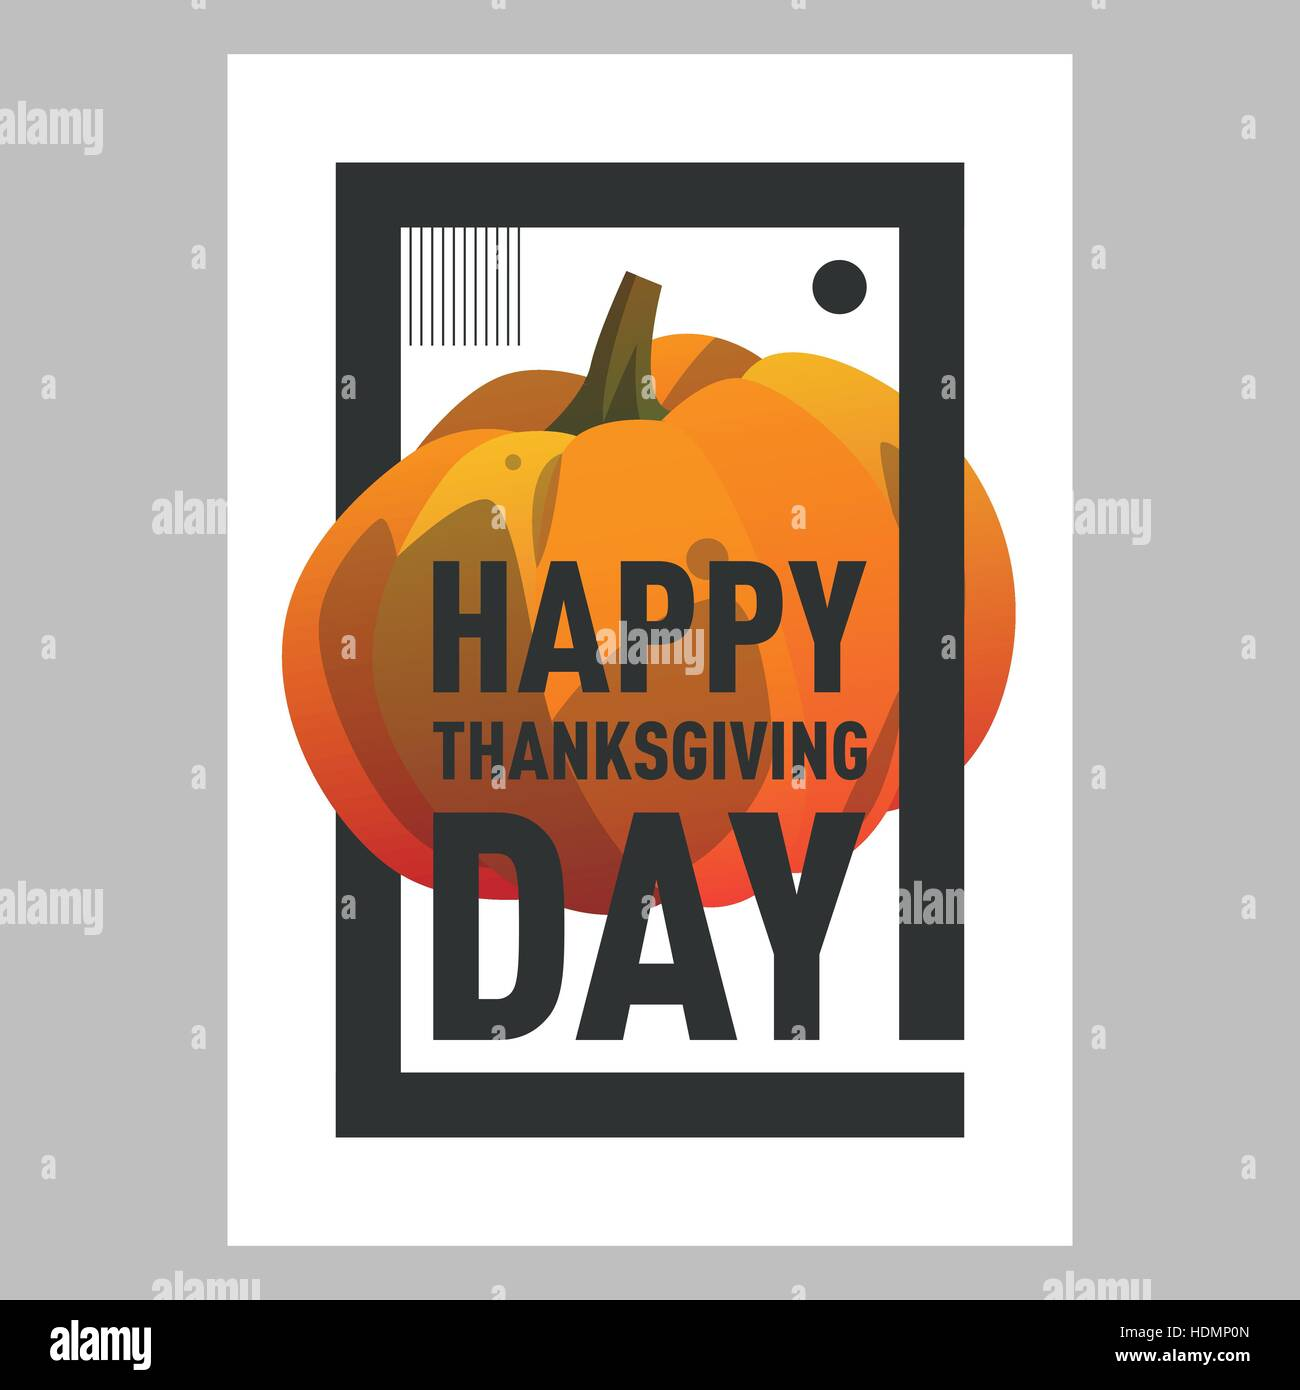 Happy Thanksgiving Day Postcard Template With Pumpkin Modern Cartoon Style Gradient Autumn Holiday Postca